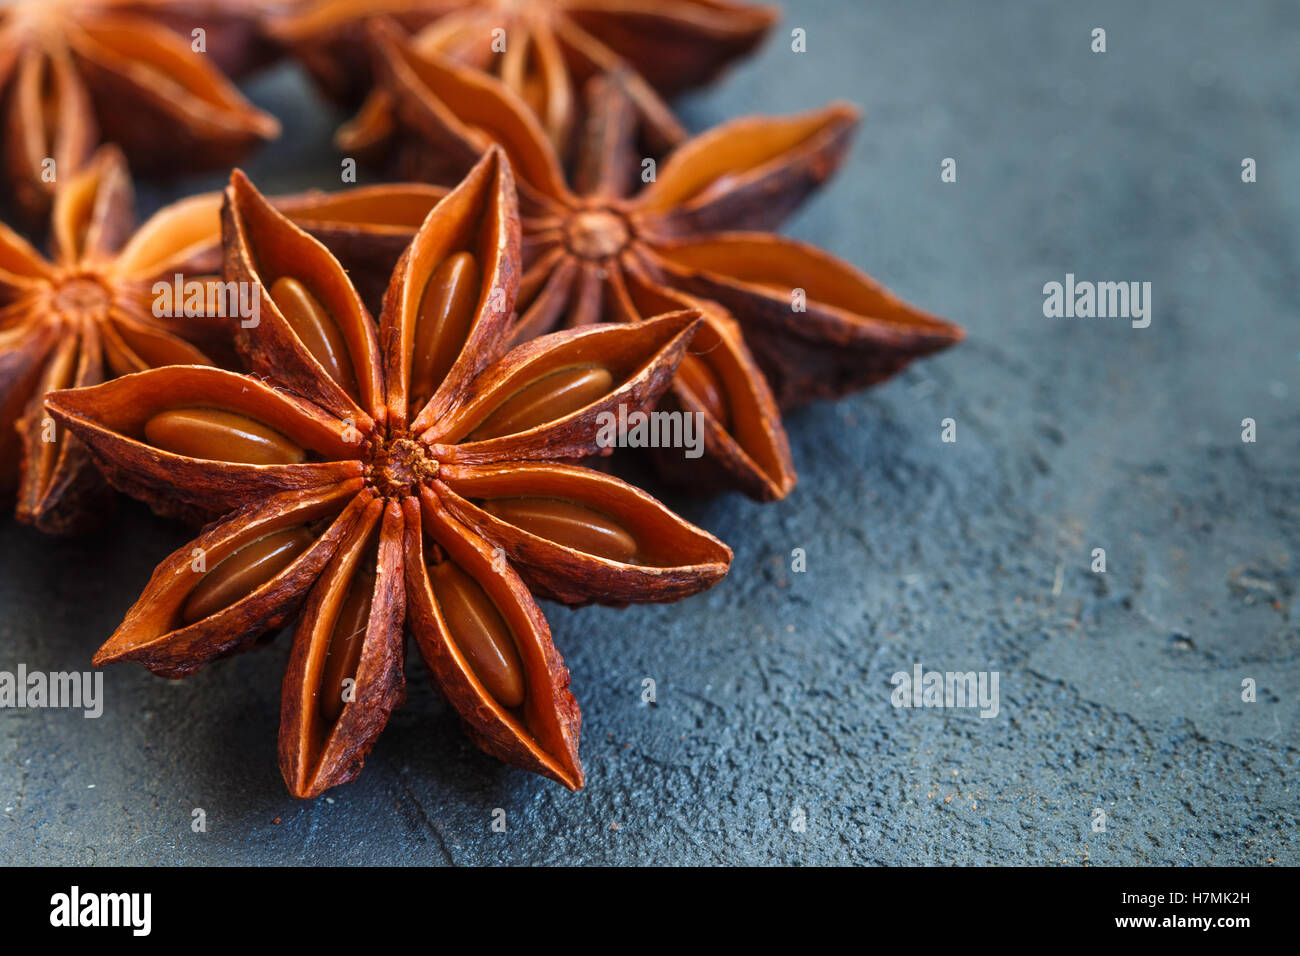 Star anise on black table. Selective focus. Copy space - Stock Image